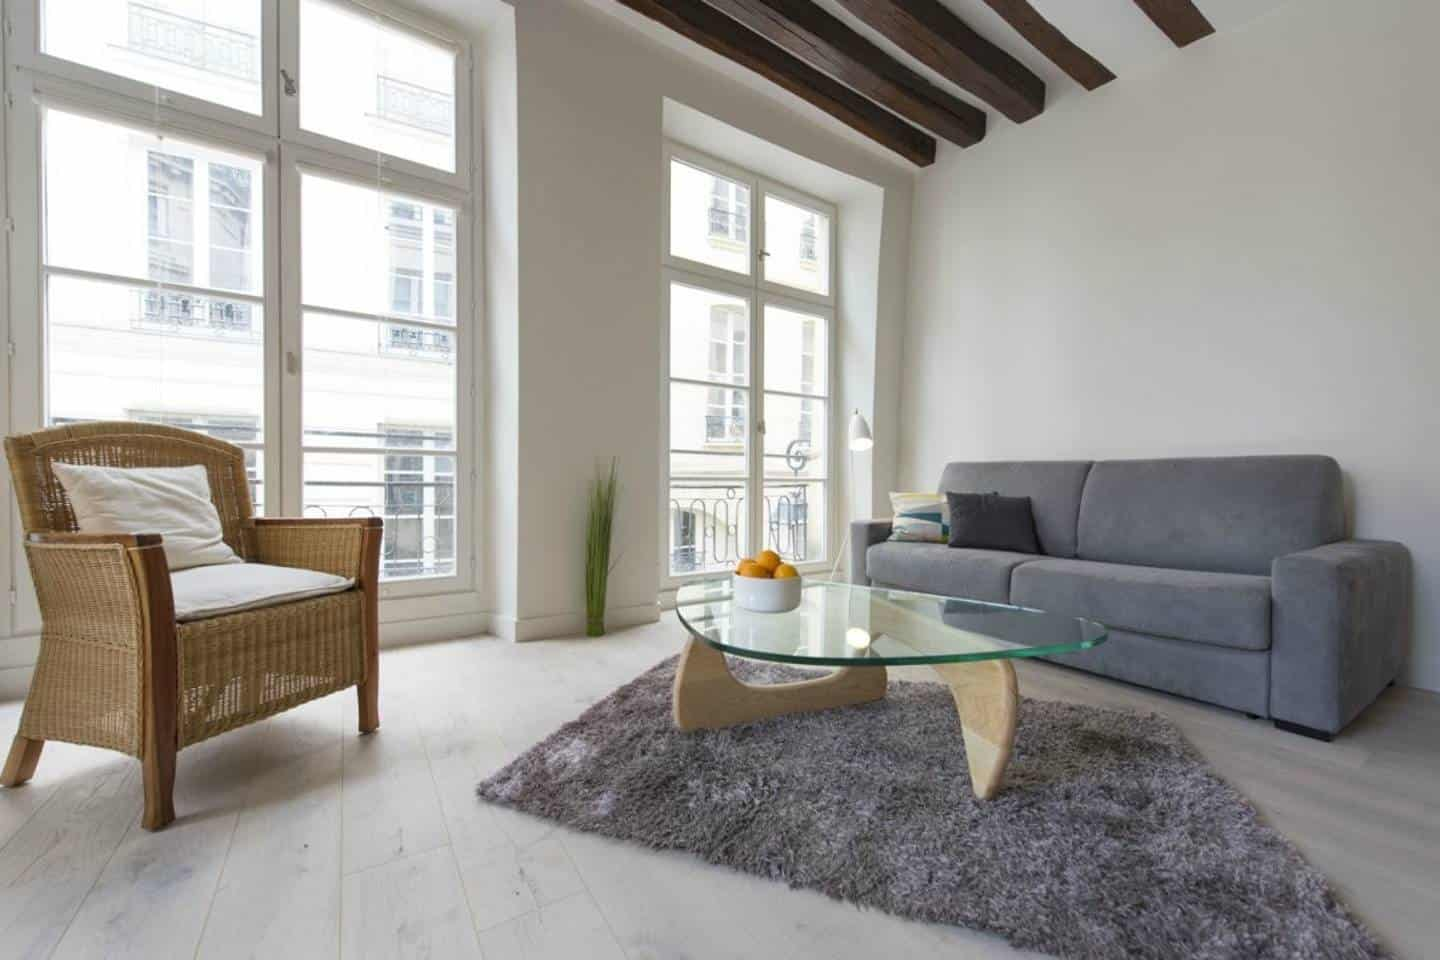 Wow! This Airbnb Paris listing near Centre Pompidou is dreamy. You have to see the pictures!